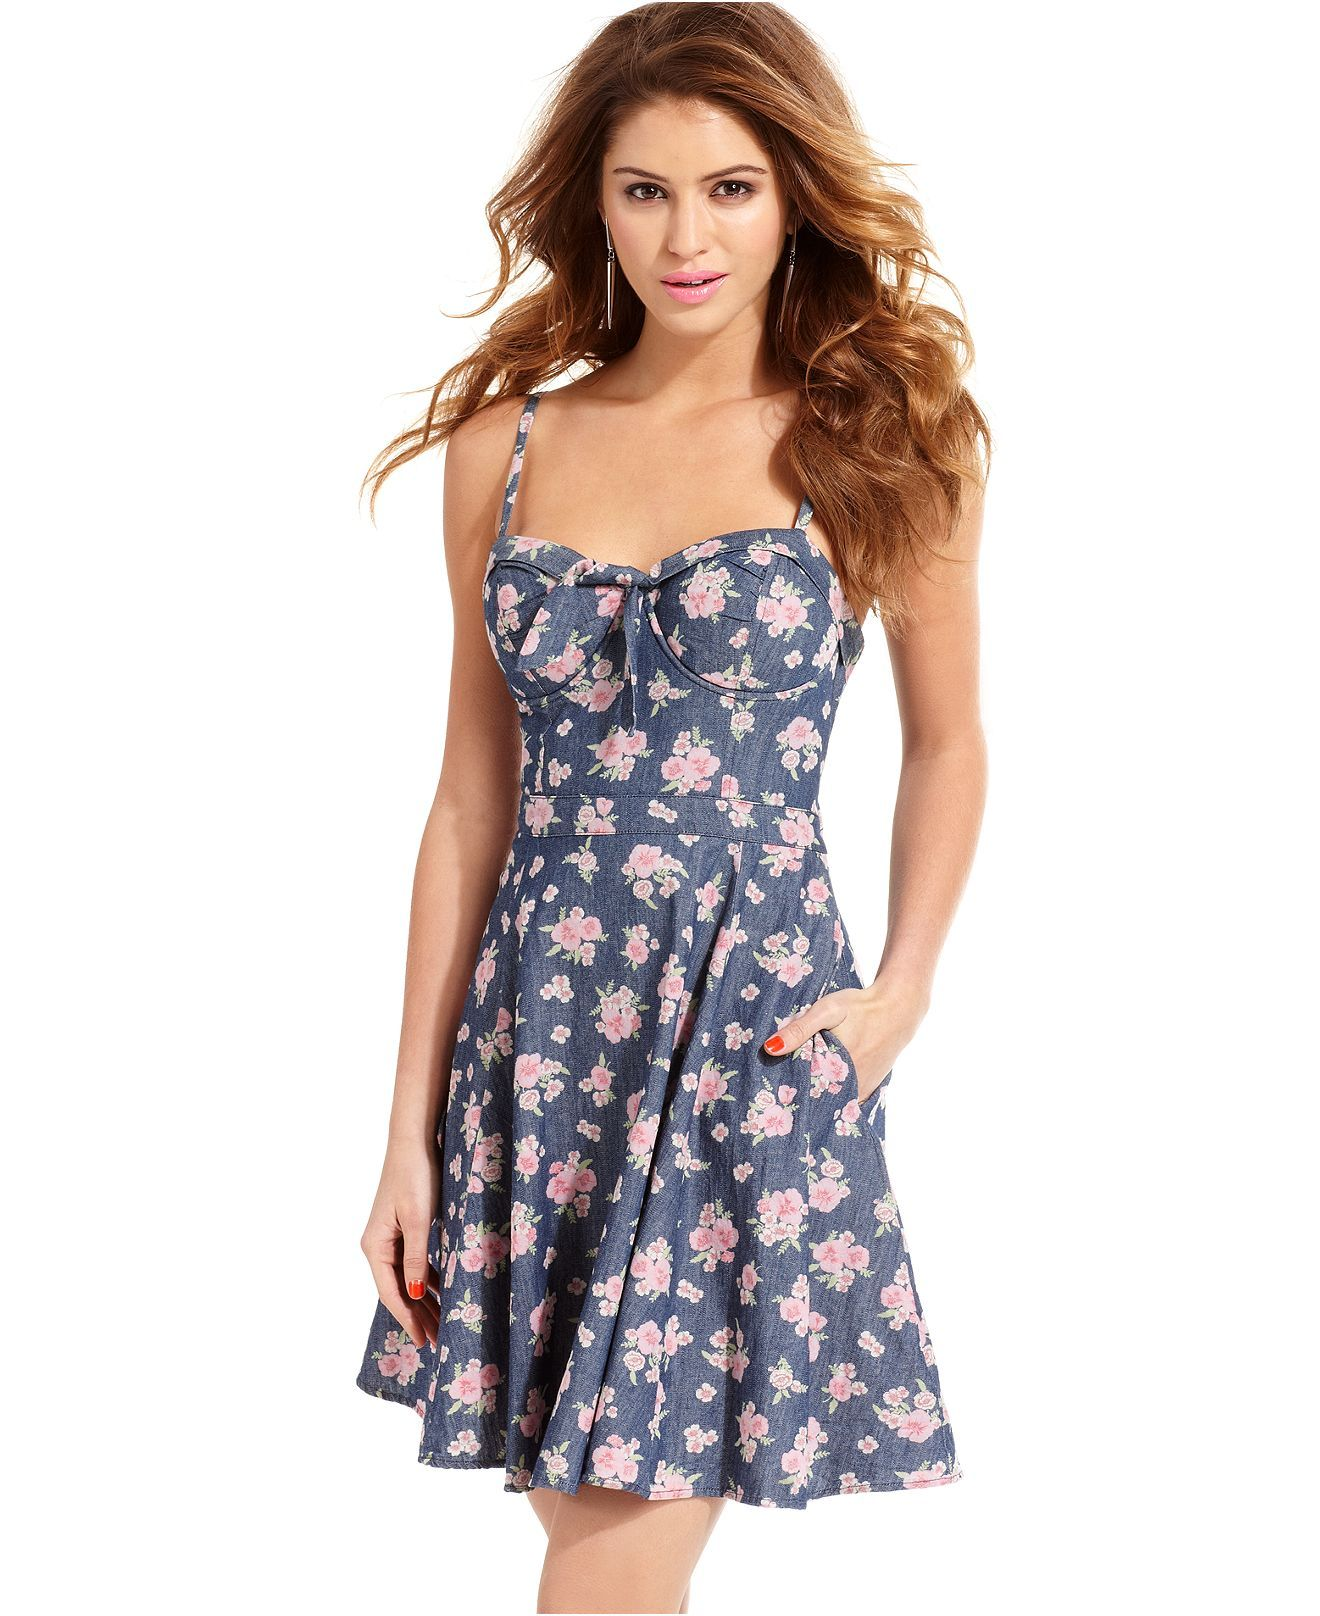 Jessica Simpson Juniors Dress, Sleeveless Floral-Print Chambray - Juniors  Jessica Simpson - Macy s 6ee7f0cc462c